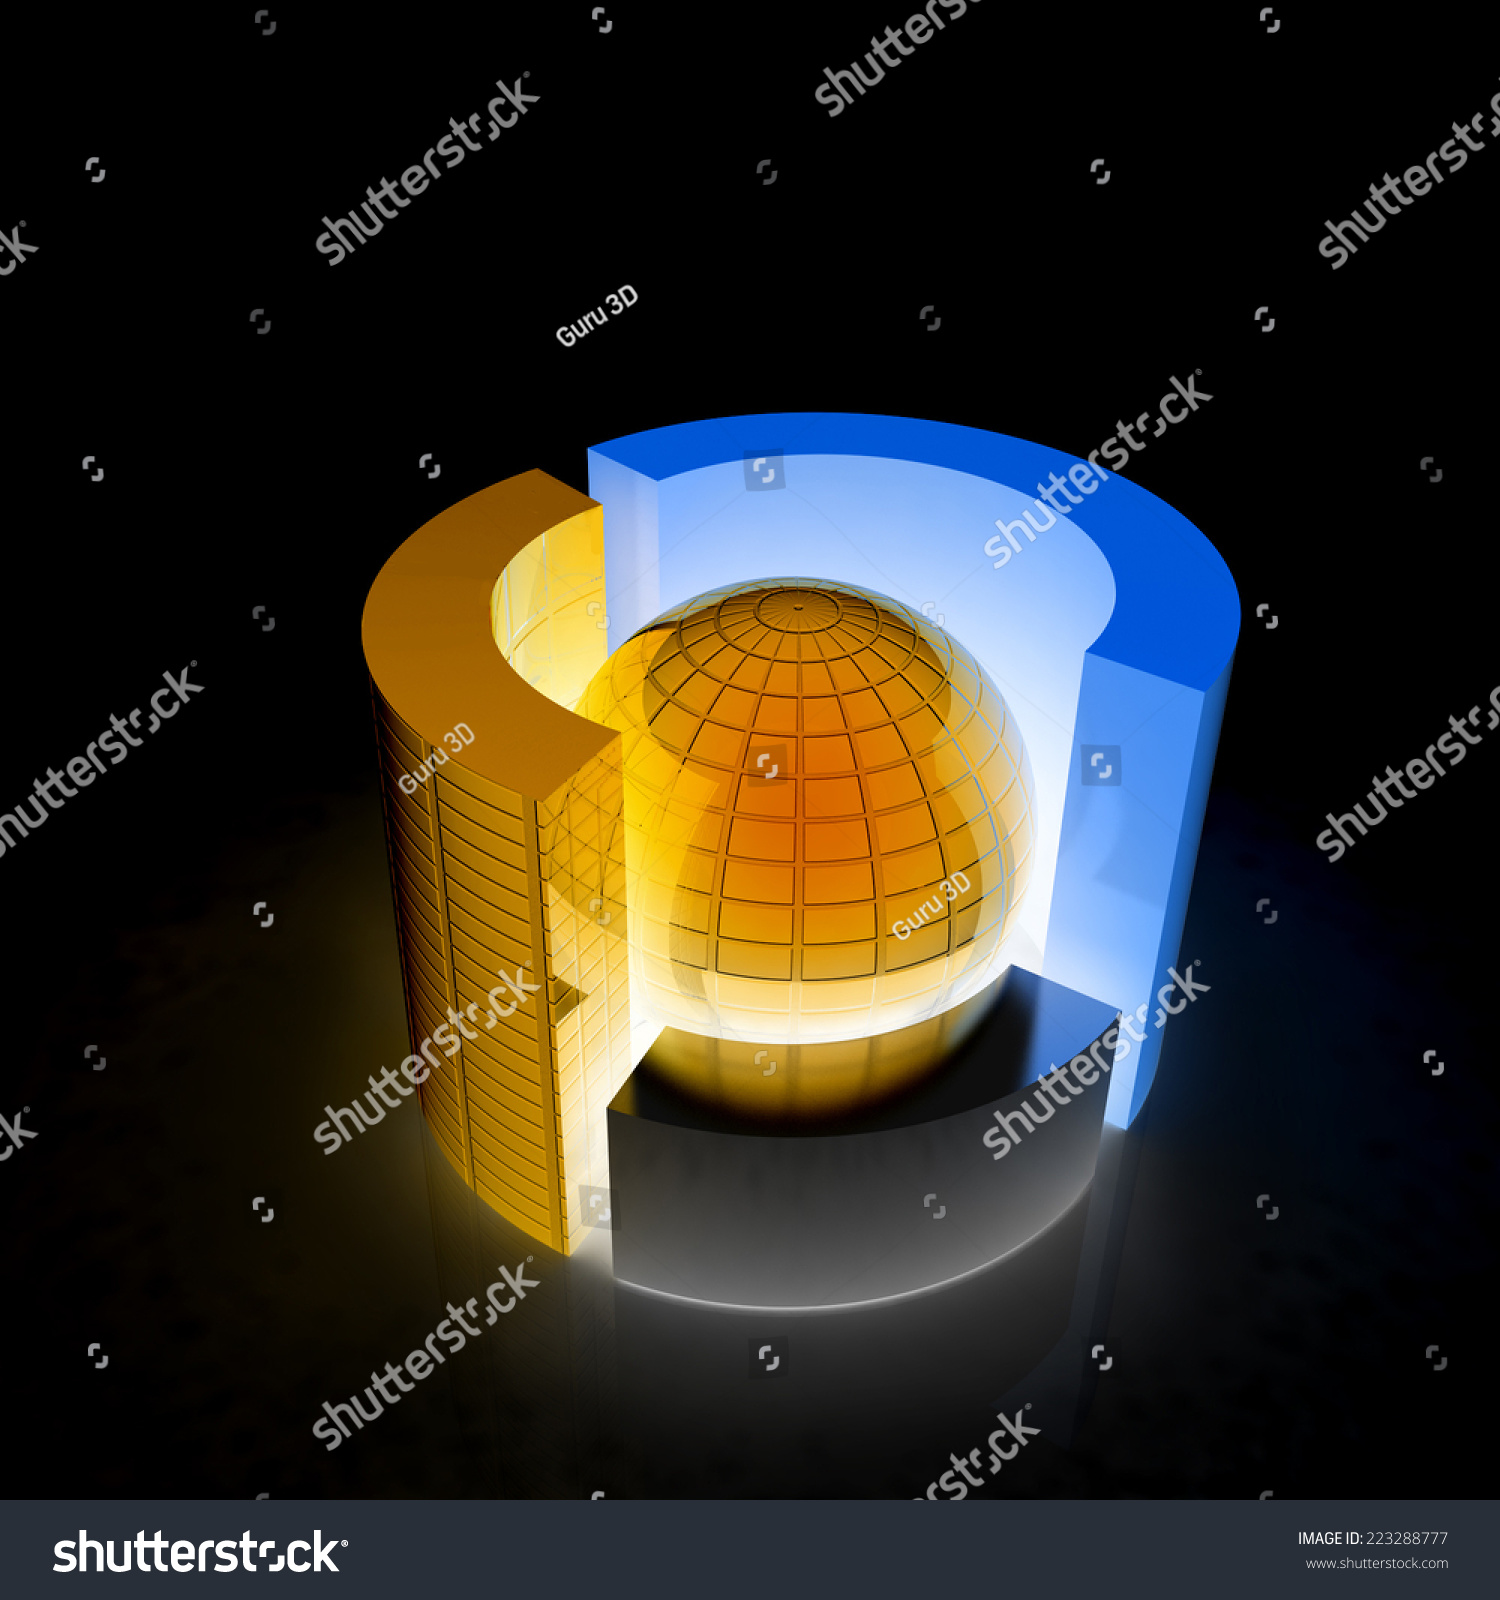 hight resolution of 3d circular diagram and sphere on black background